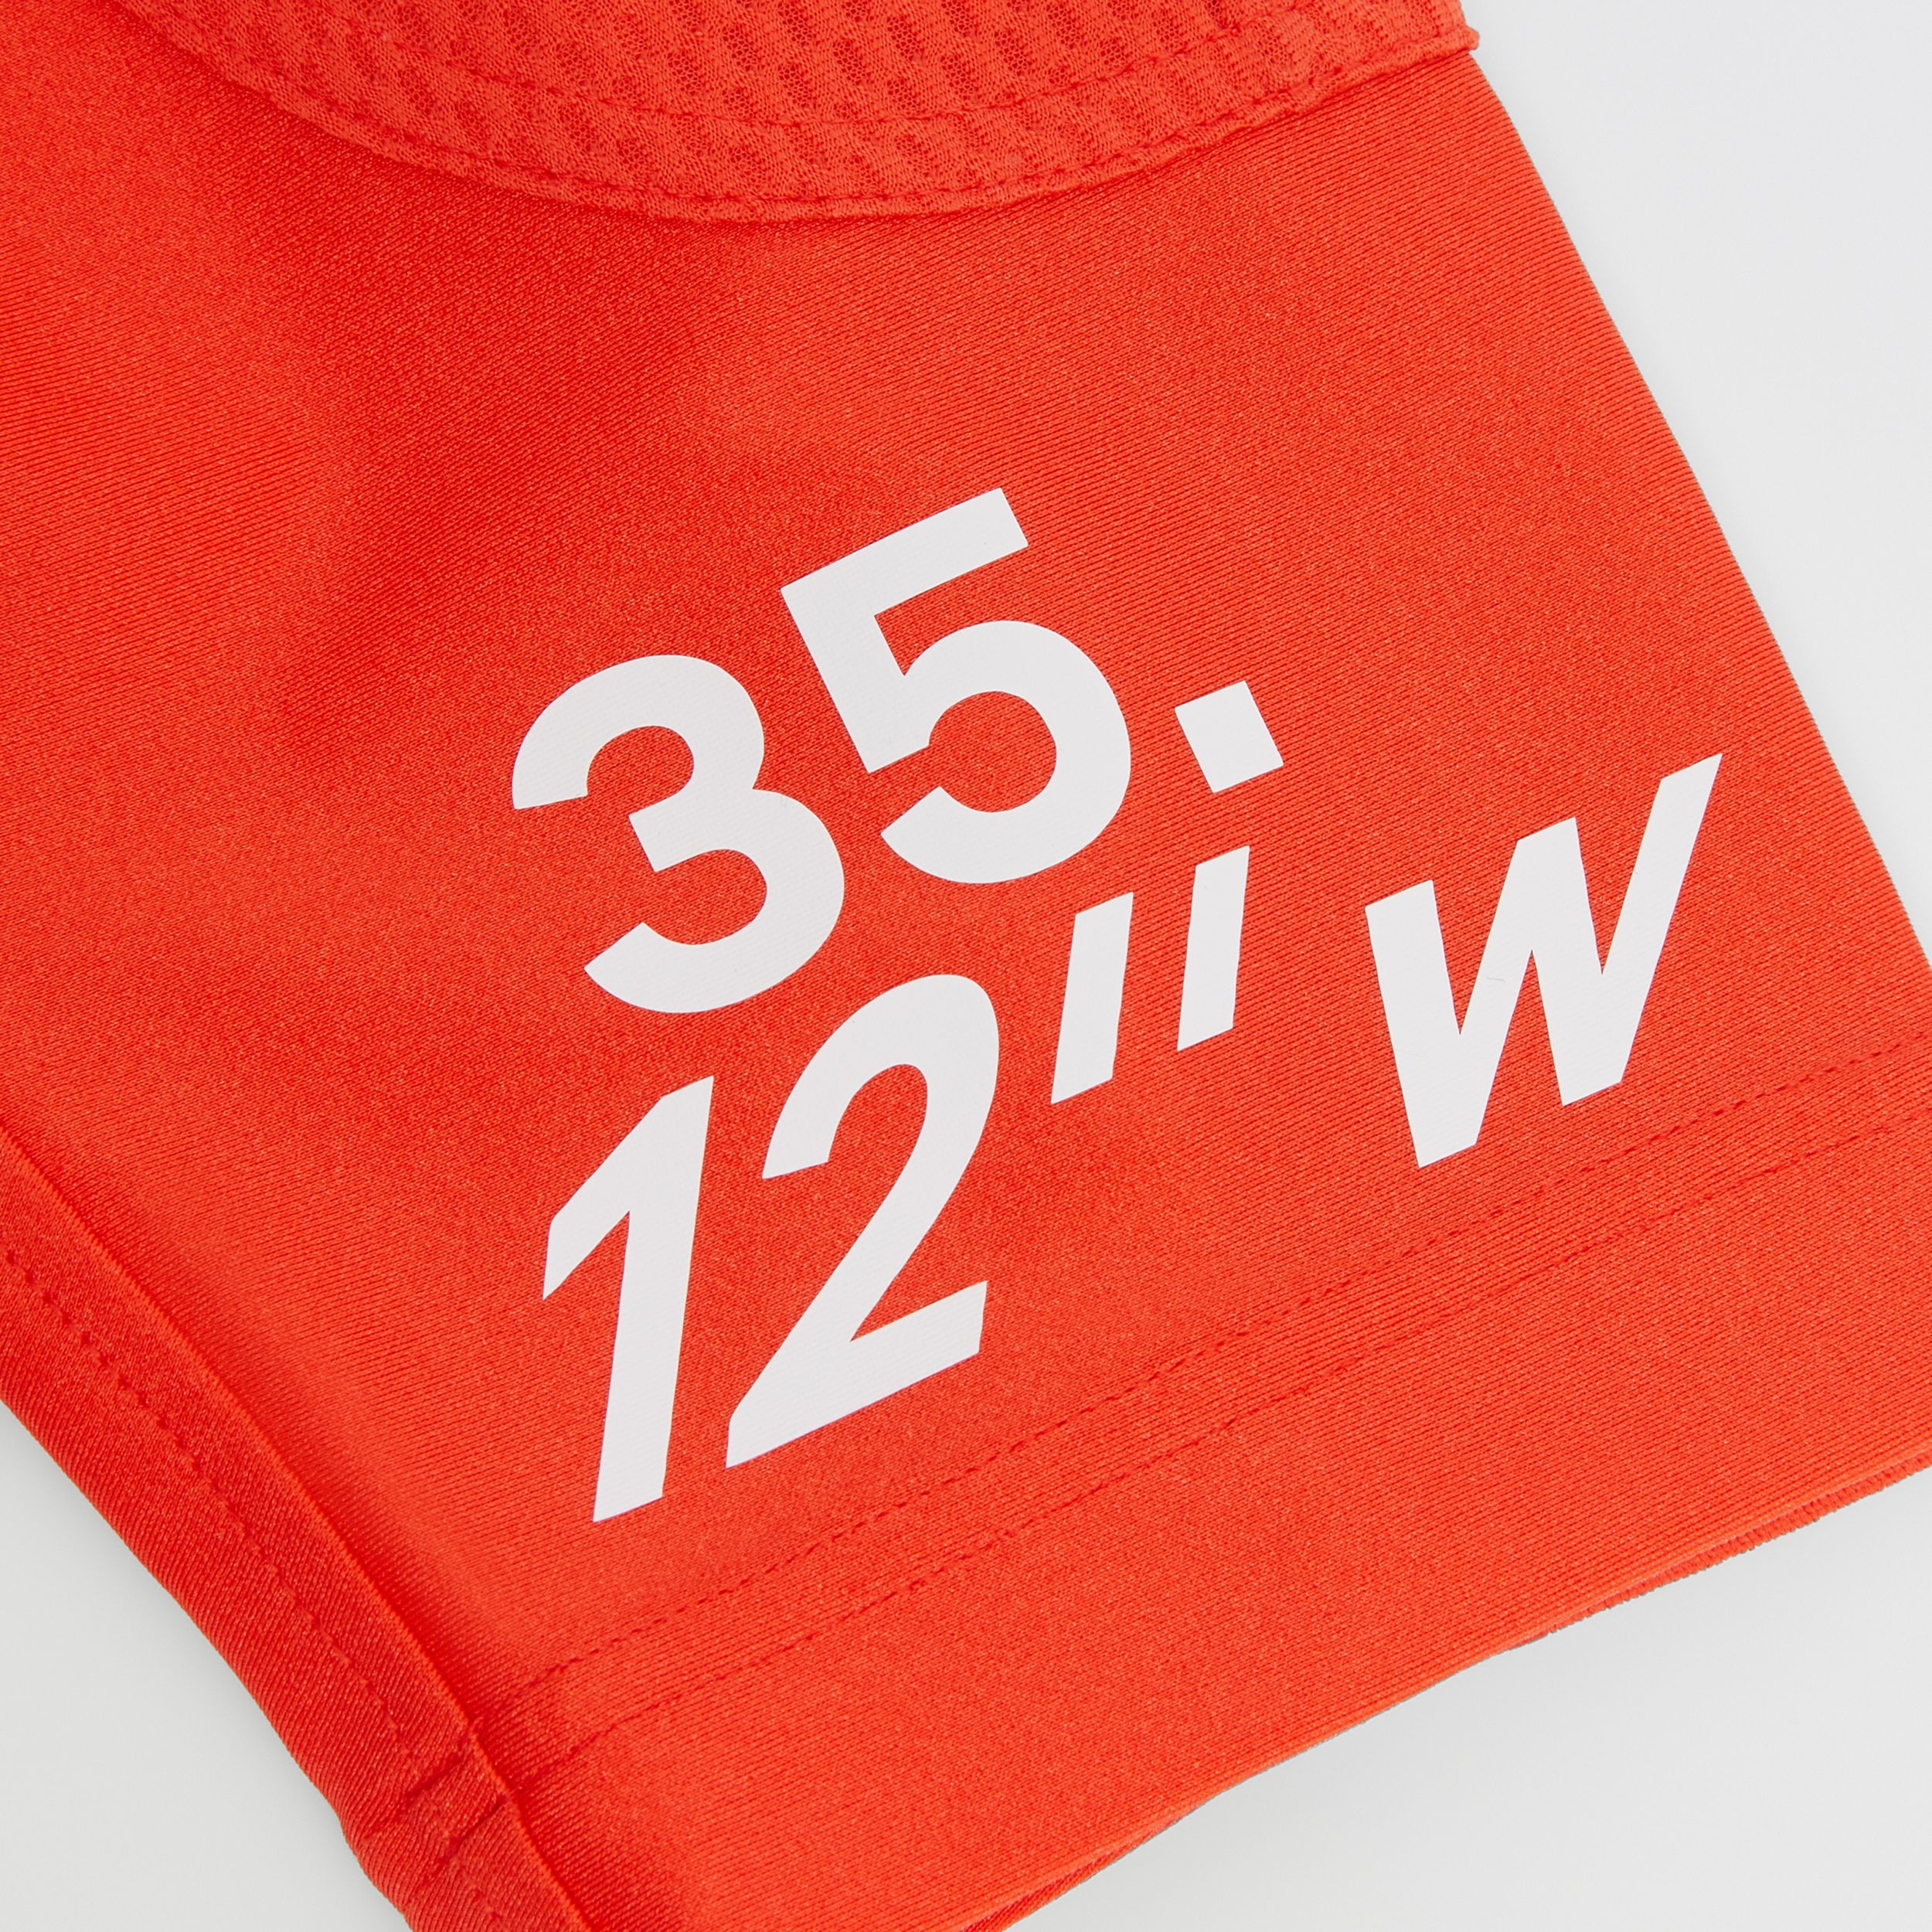 Coordinates Print Stretch Jersey Cycling Shorts in Orange Red | Burberry United States - 2